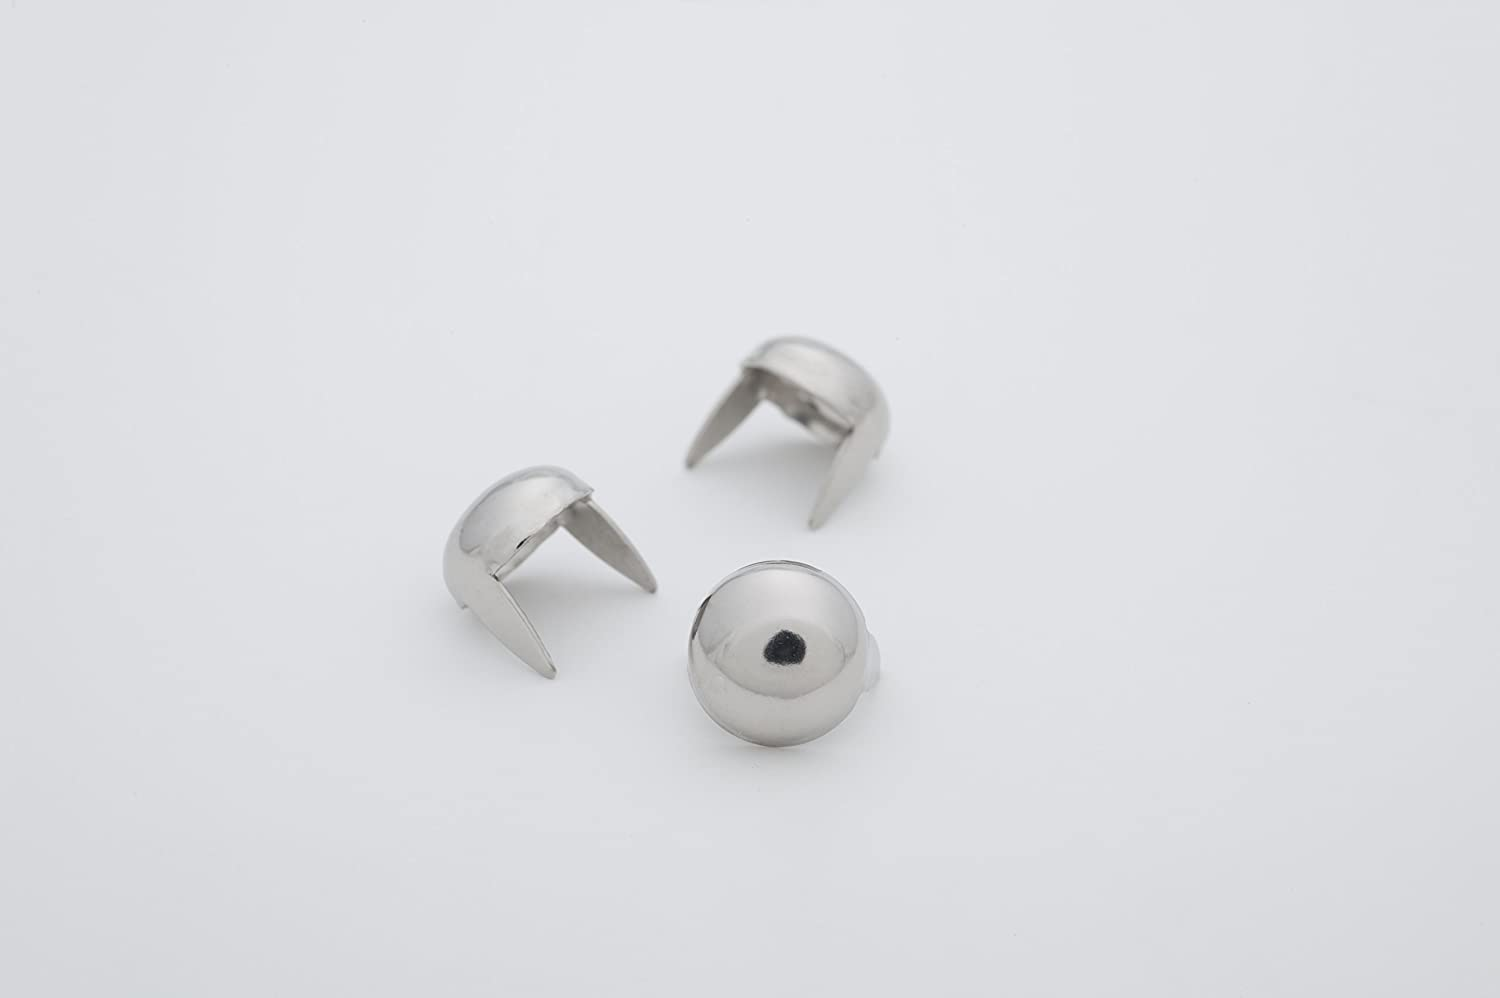 Medium Silver Dome Metal Studs - Size 10 - Ideally Used For Denim and Leather Work - Classic Two-Prong Studs – Pack of 100 studs and spikes StudsAndSpikes